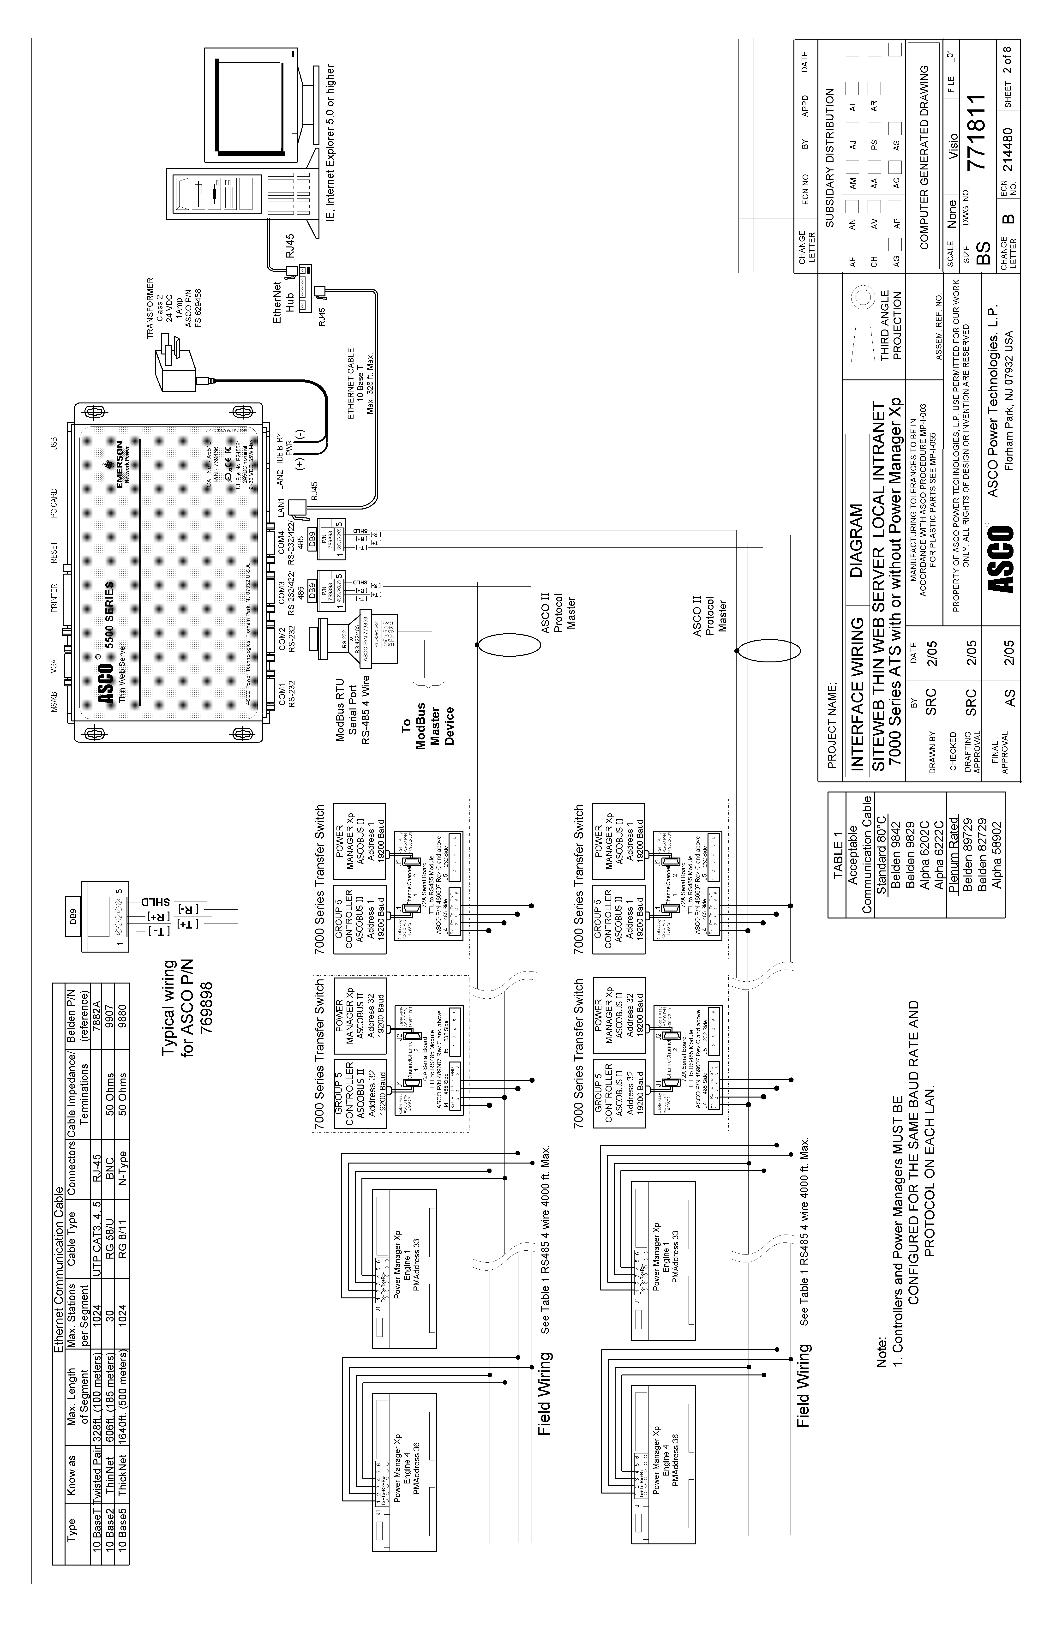 hight resolution of asco 8320g194 wiring diagram wiring diagrams valueasco series 300 wiring diagram wiring diagram inside asco 300